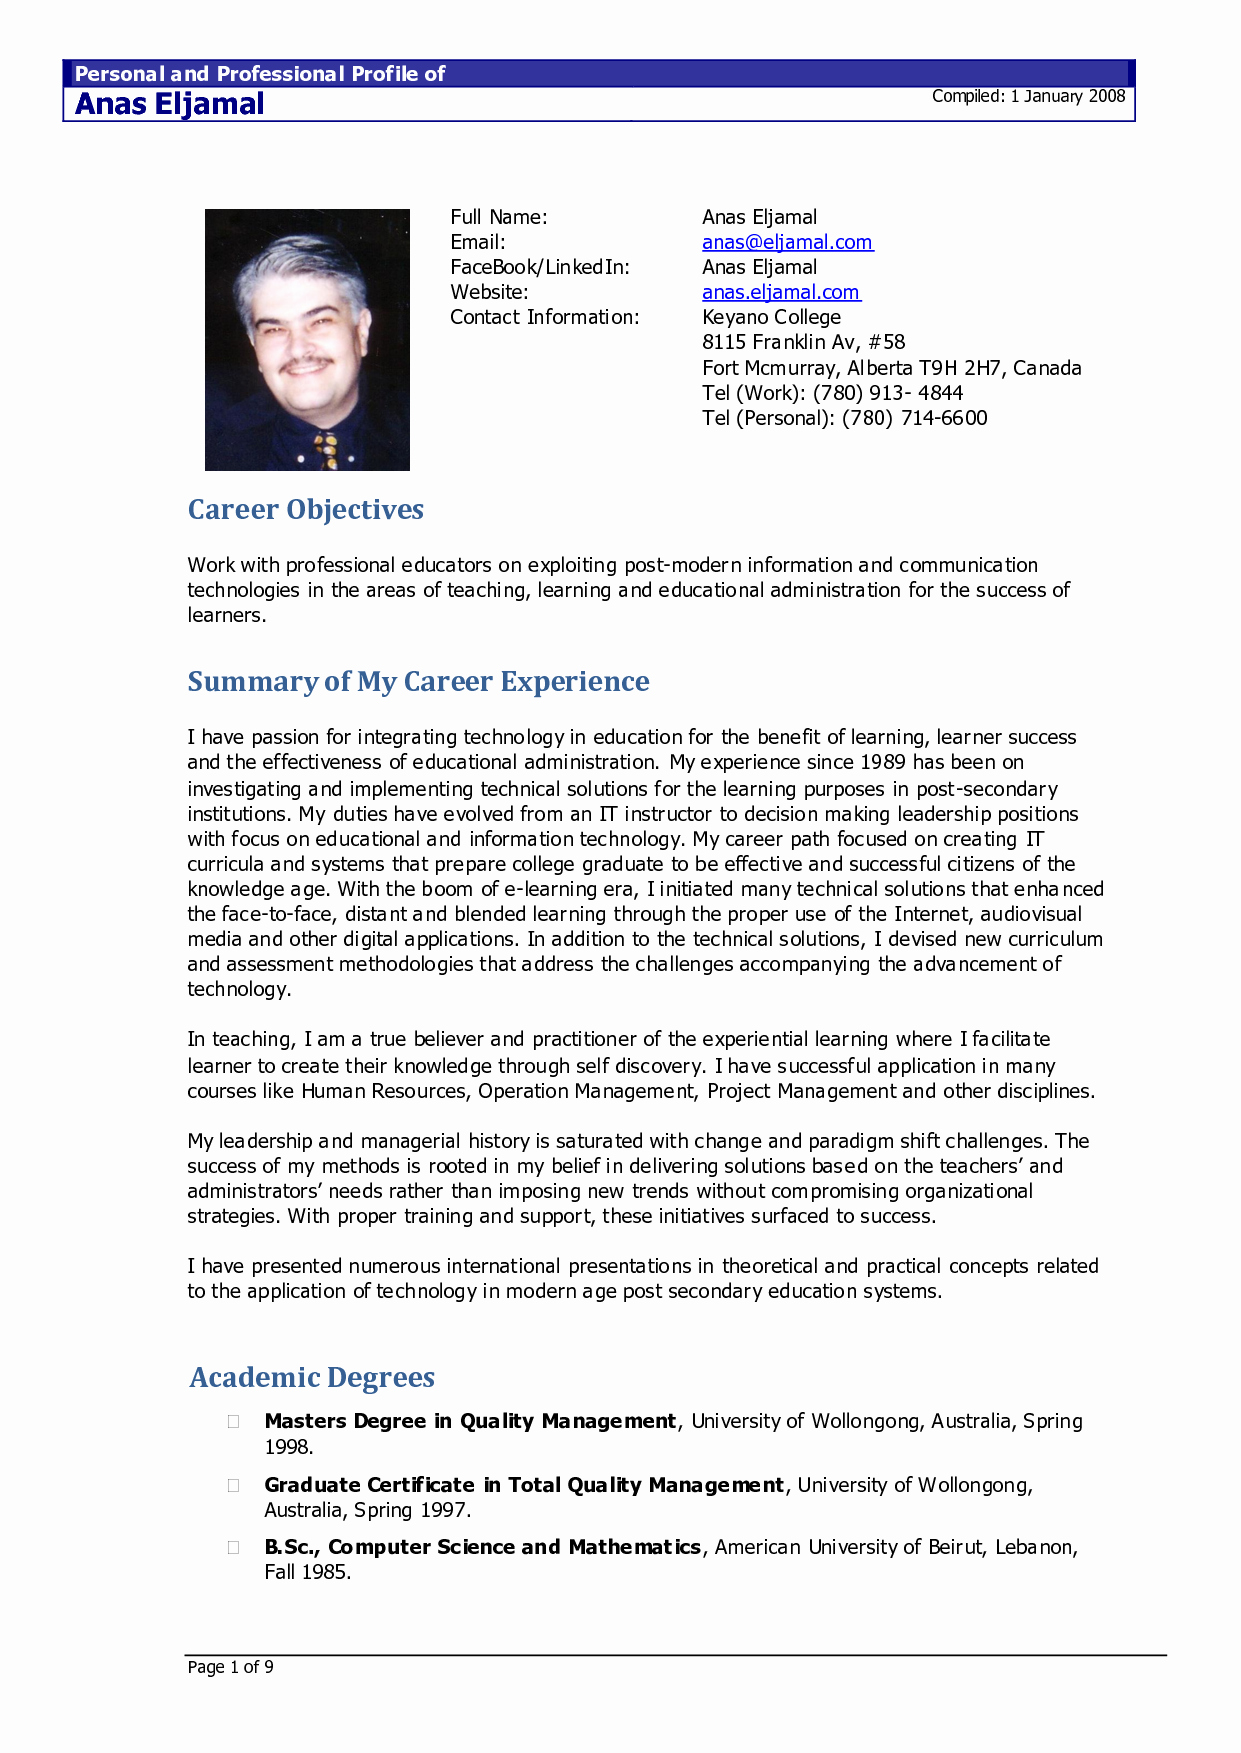 Sample Of Curriculum Vitae format Unique Resume Sample Doc